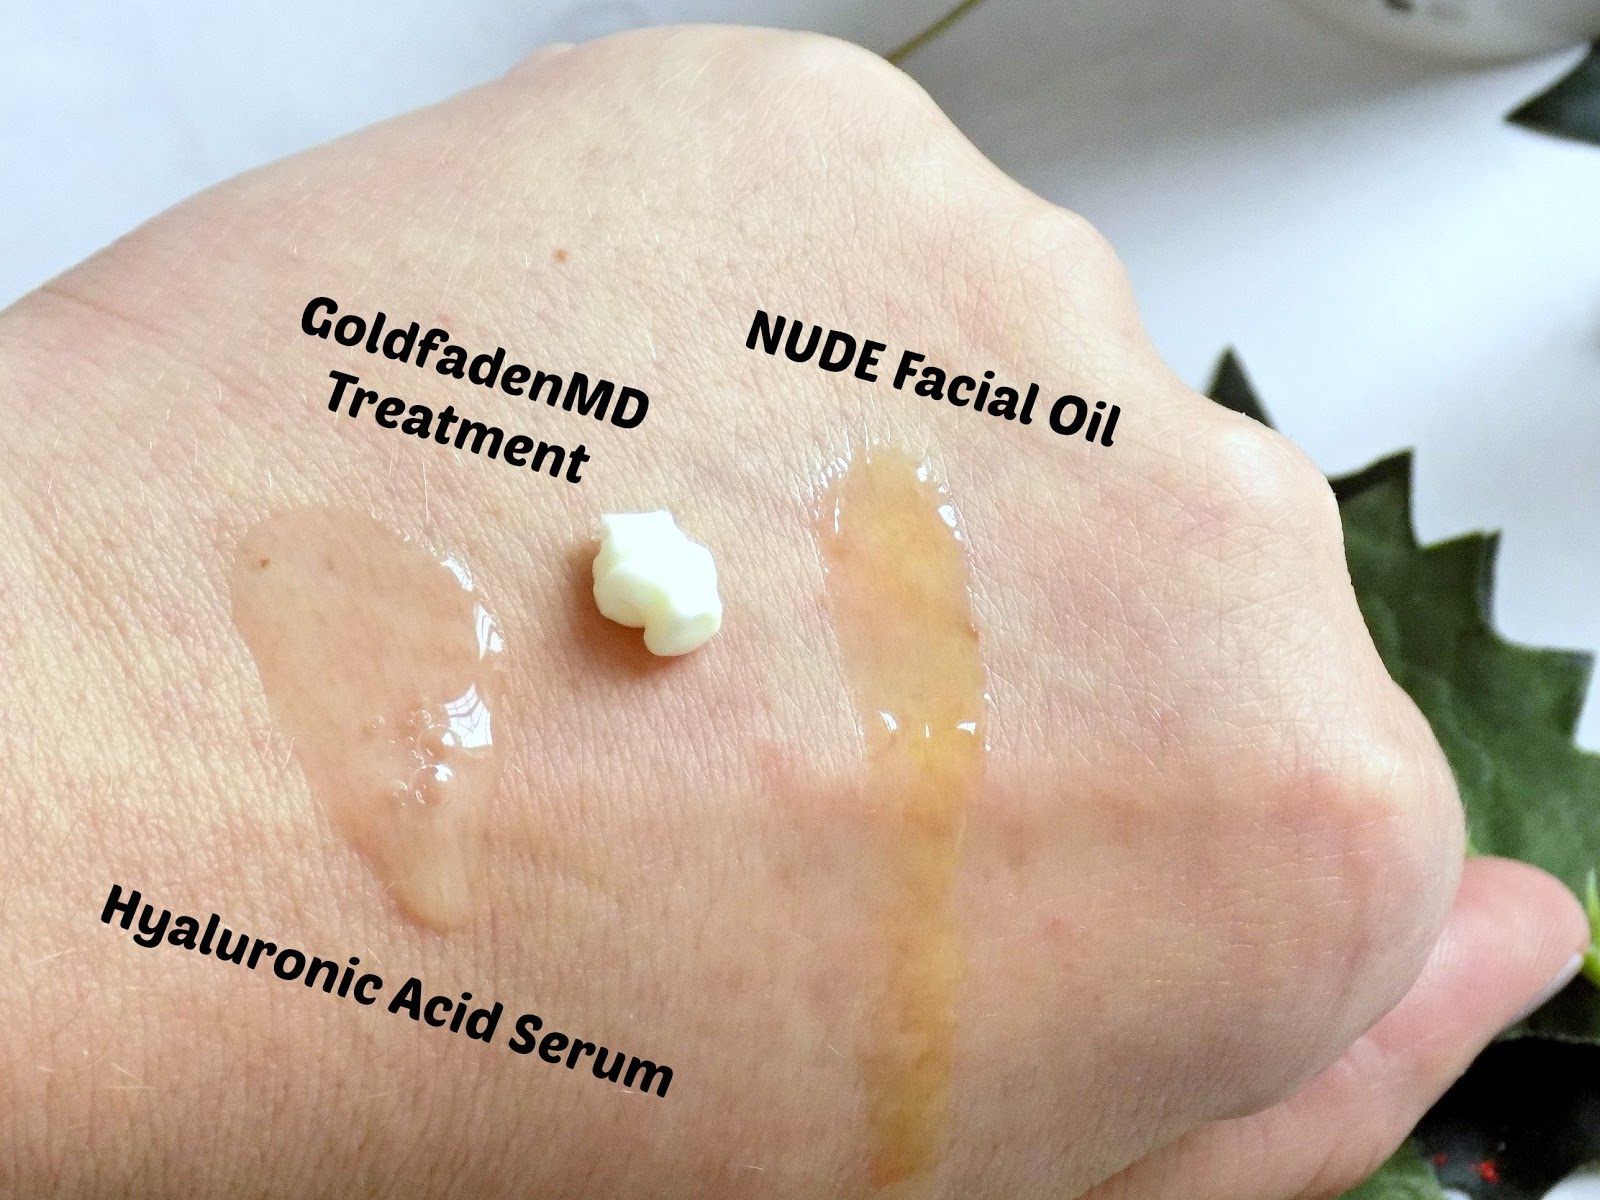 goldfadenMD Wake up Call overnight treatment, the ordinary hyaluronic acid, nude progenius treatment oil